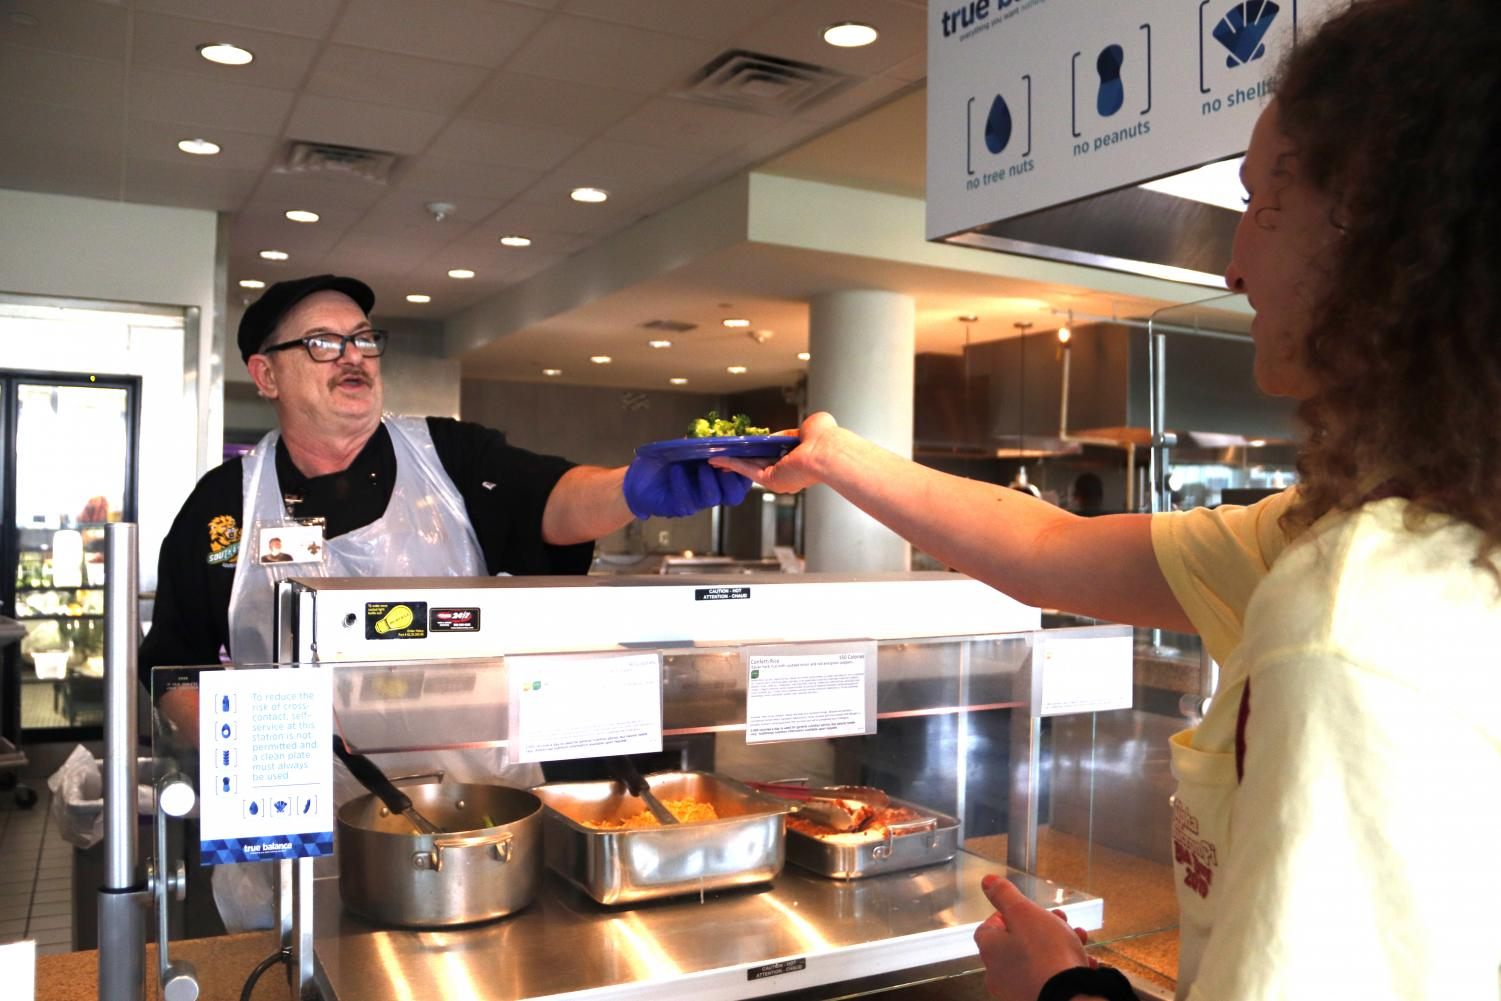 Students, faculty and staff who suffer from allergies can use the allergenic free food line at the Mane Dish.